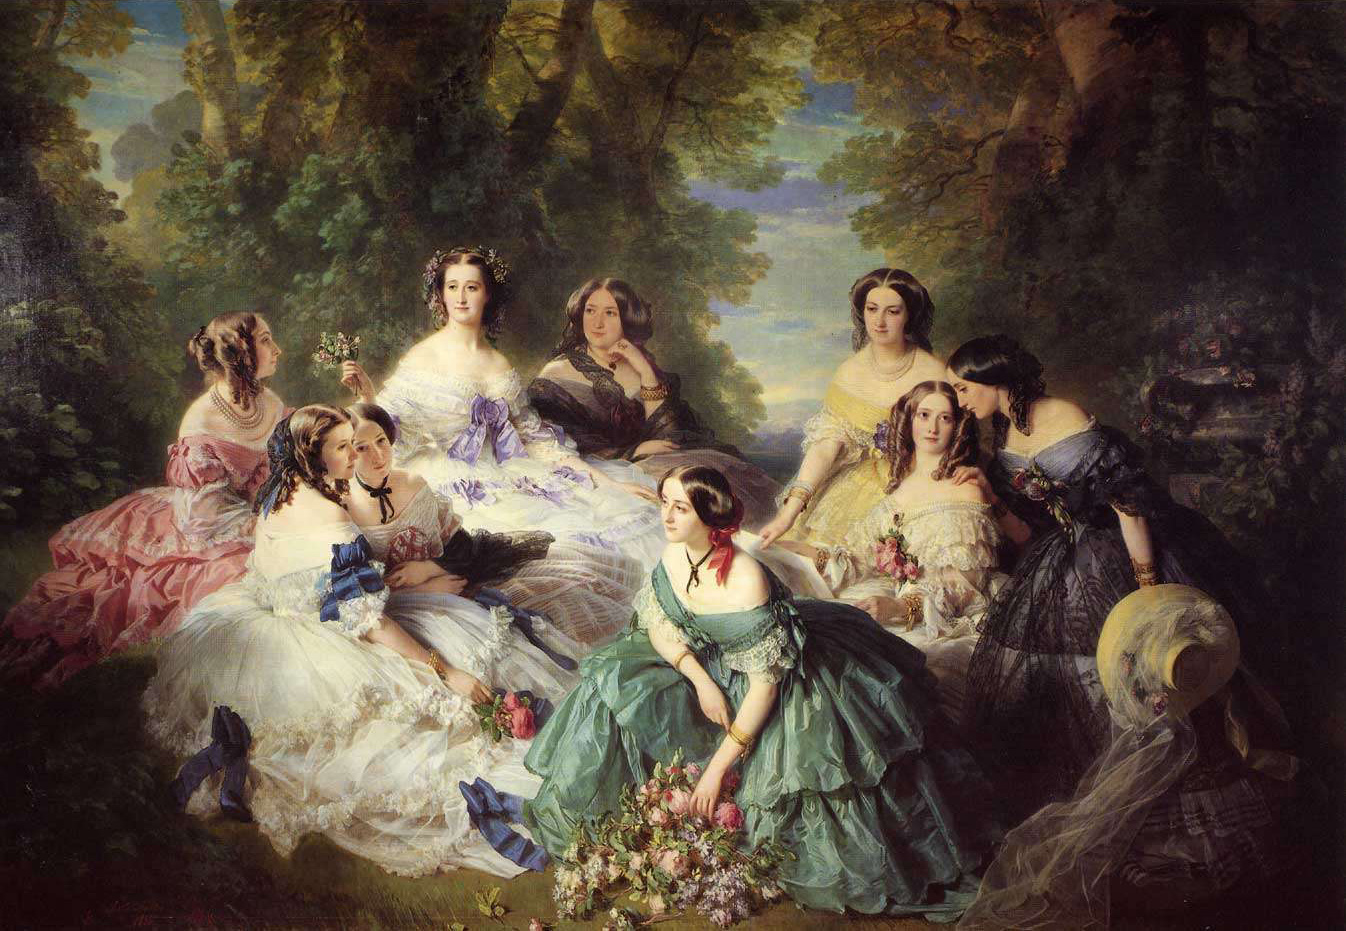 http://upload.wikimedia.org/wikipedia/commons/a/a0/Winterhalter_Eugenie_1855.jpg